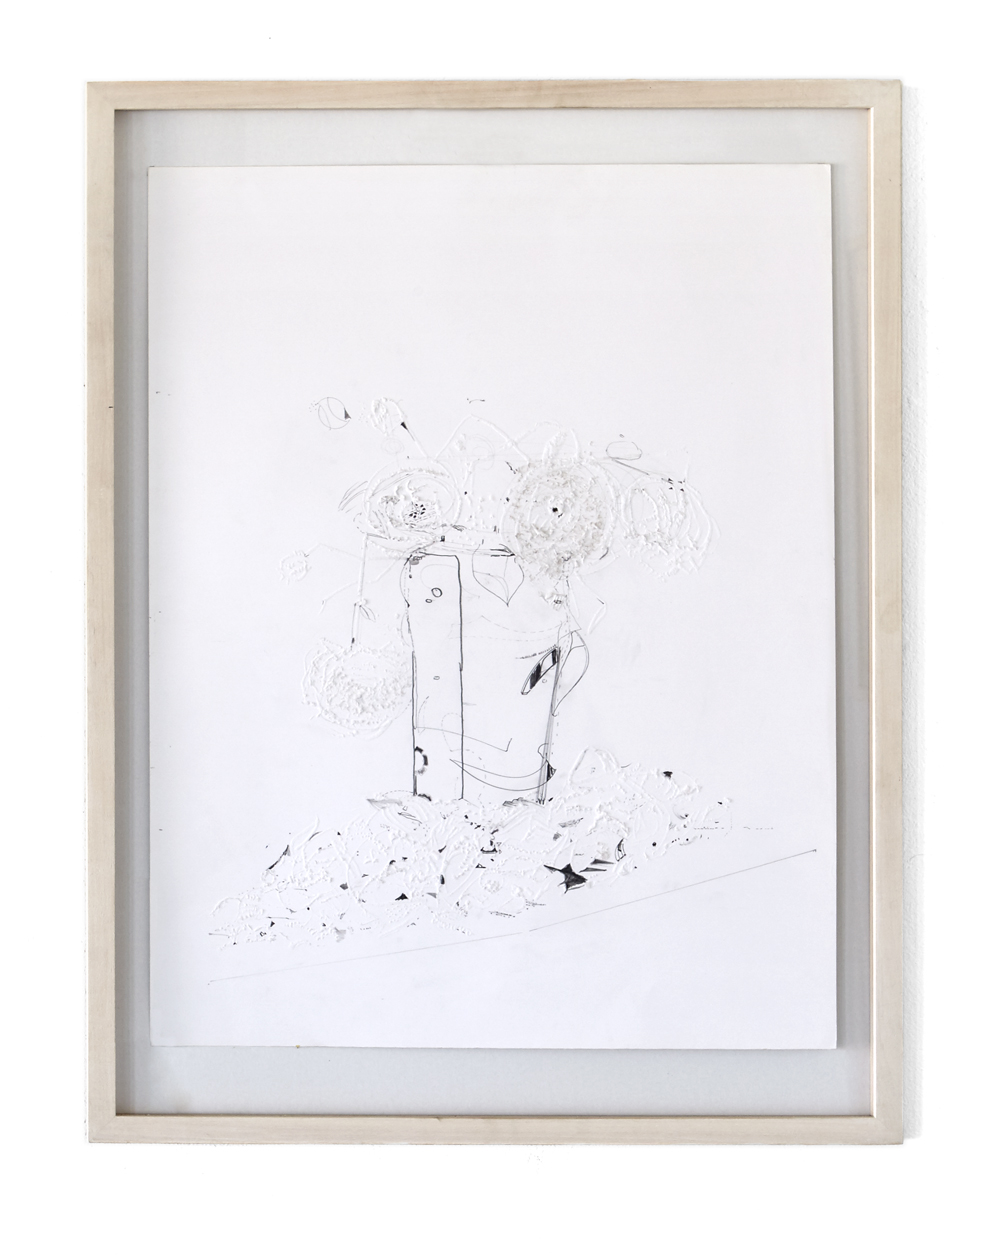 Karine Fauchard, Dead Flowers Bouquets #2, 2013, pencil and engraving on bristol paper, 65 x 50 cm, wooden frame